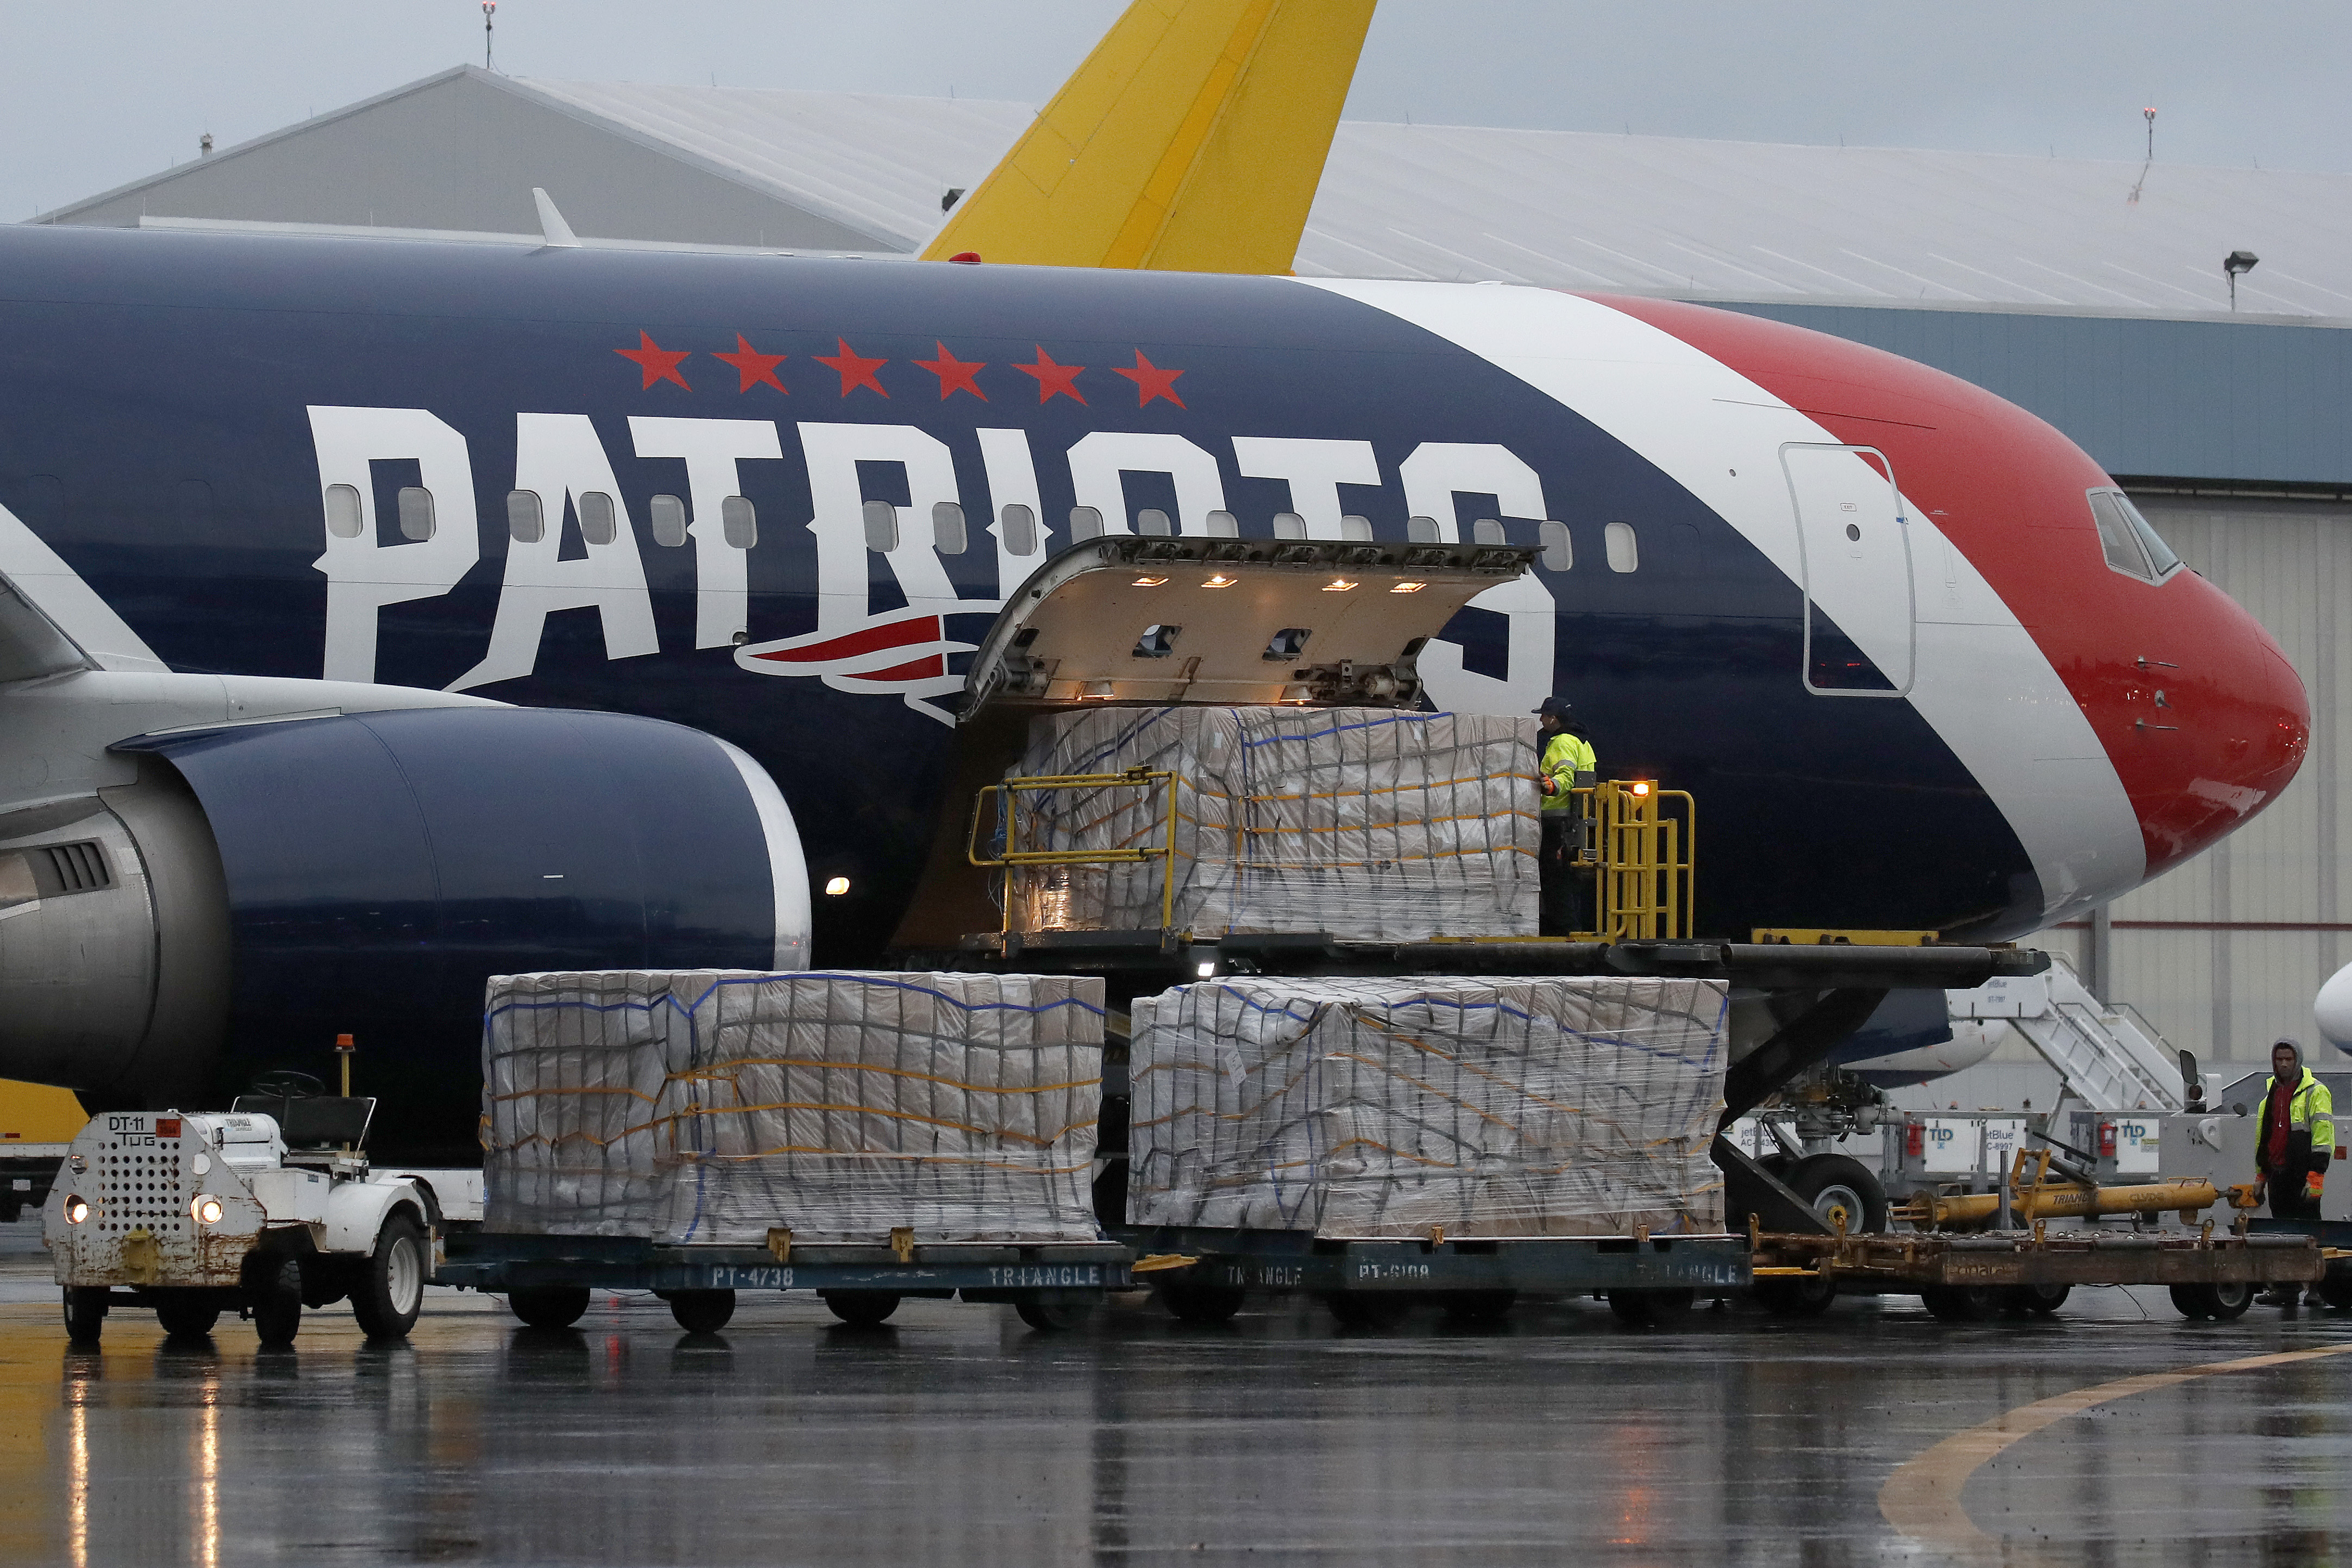 Palettes of N95 respirator masks are off-loaded from the New England Patriots football team's customized Boeing 767 jet on the tarmac, Thursday, April 2, 2020, at Logan Airport in Boston, after returning from China. The Kraft family deployed the Patriots team plane to China to fetch more than one million masks for use by front-line health care workers to prevent the spread of the coronavirus.